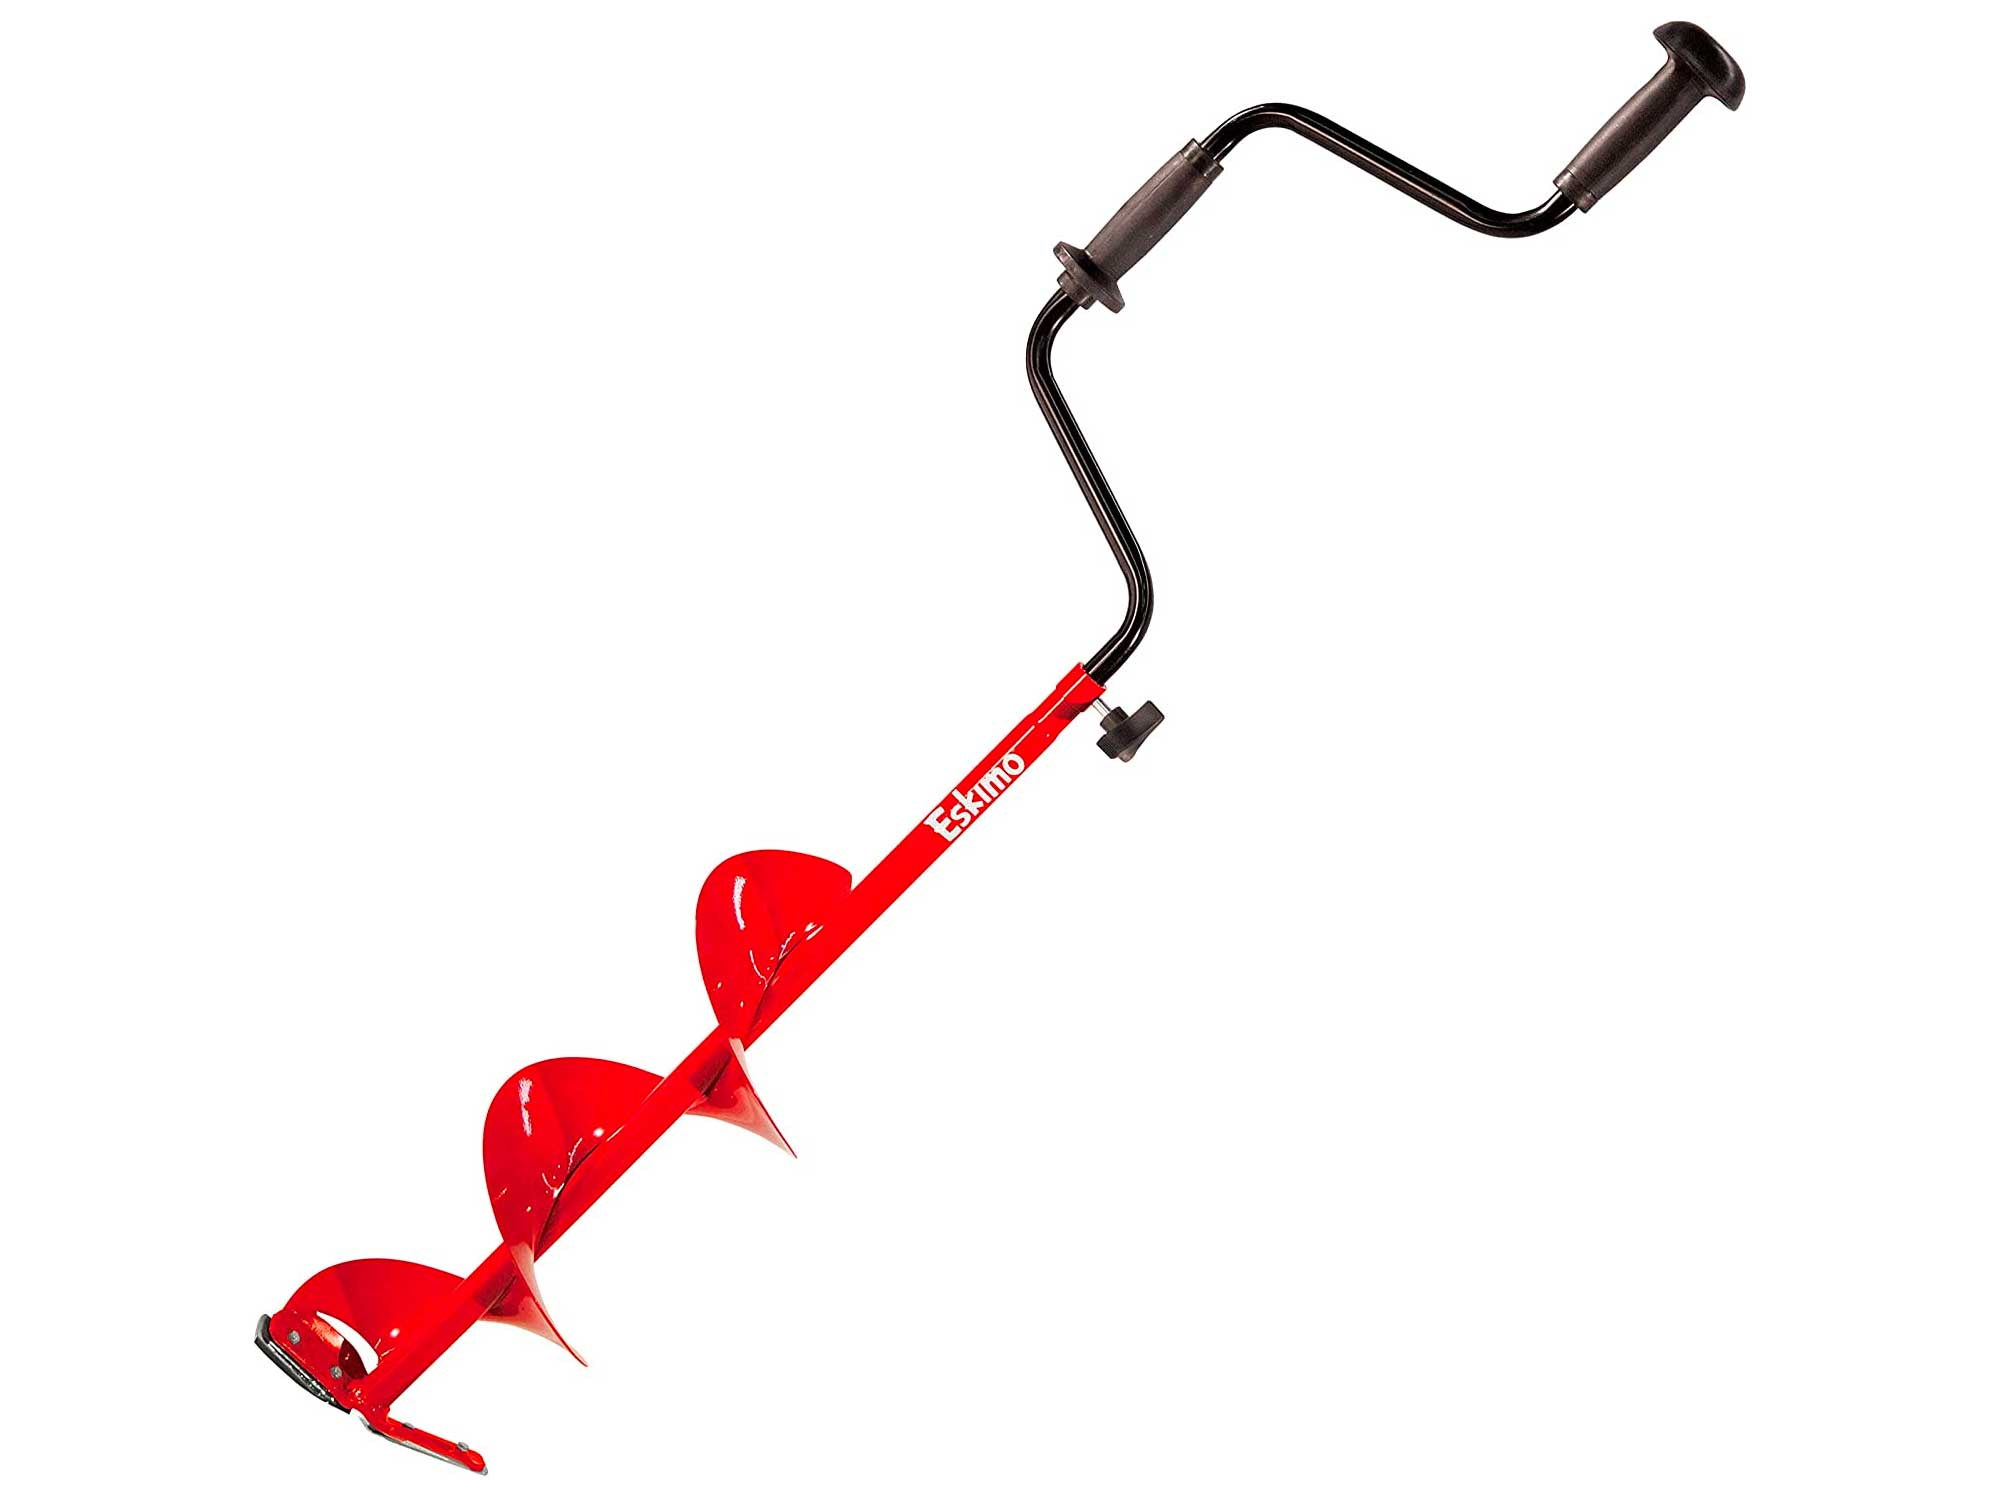 Eskimo Hand Auger with Dual Flat Blades, 6 - 8 Inch